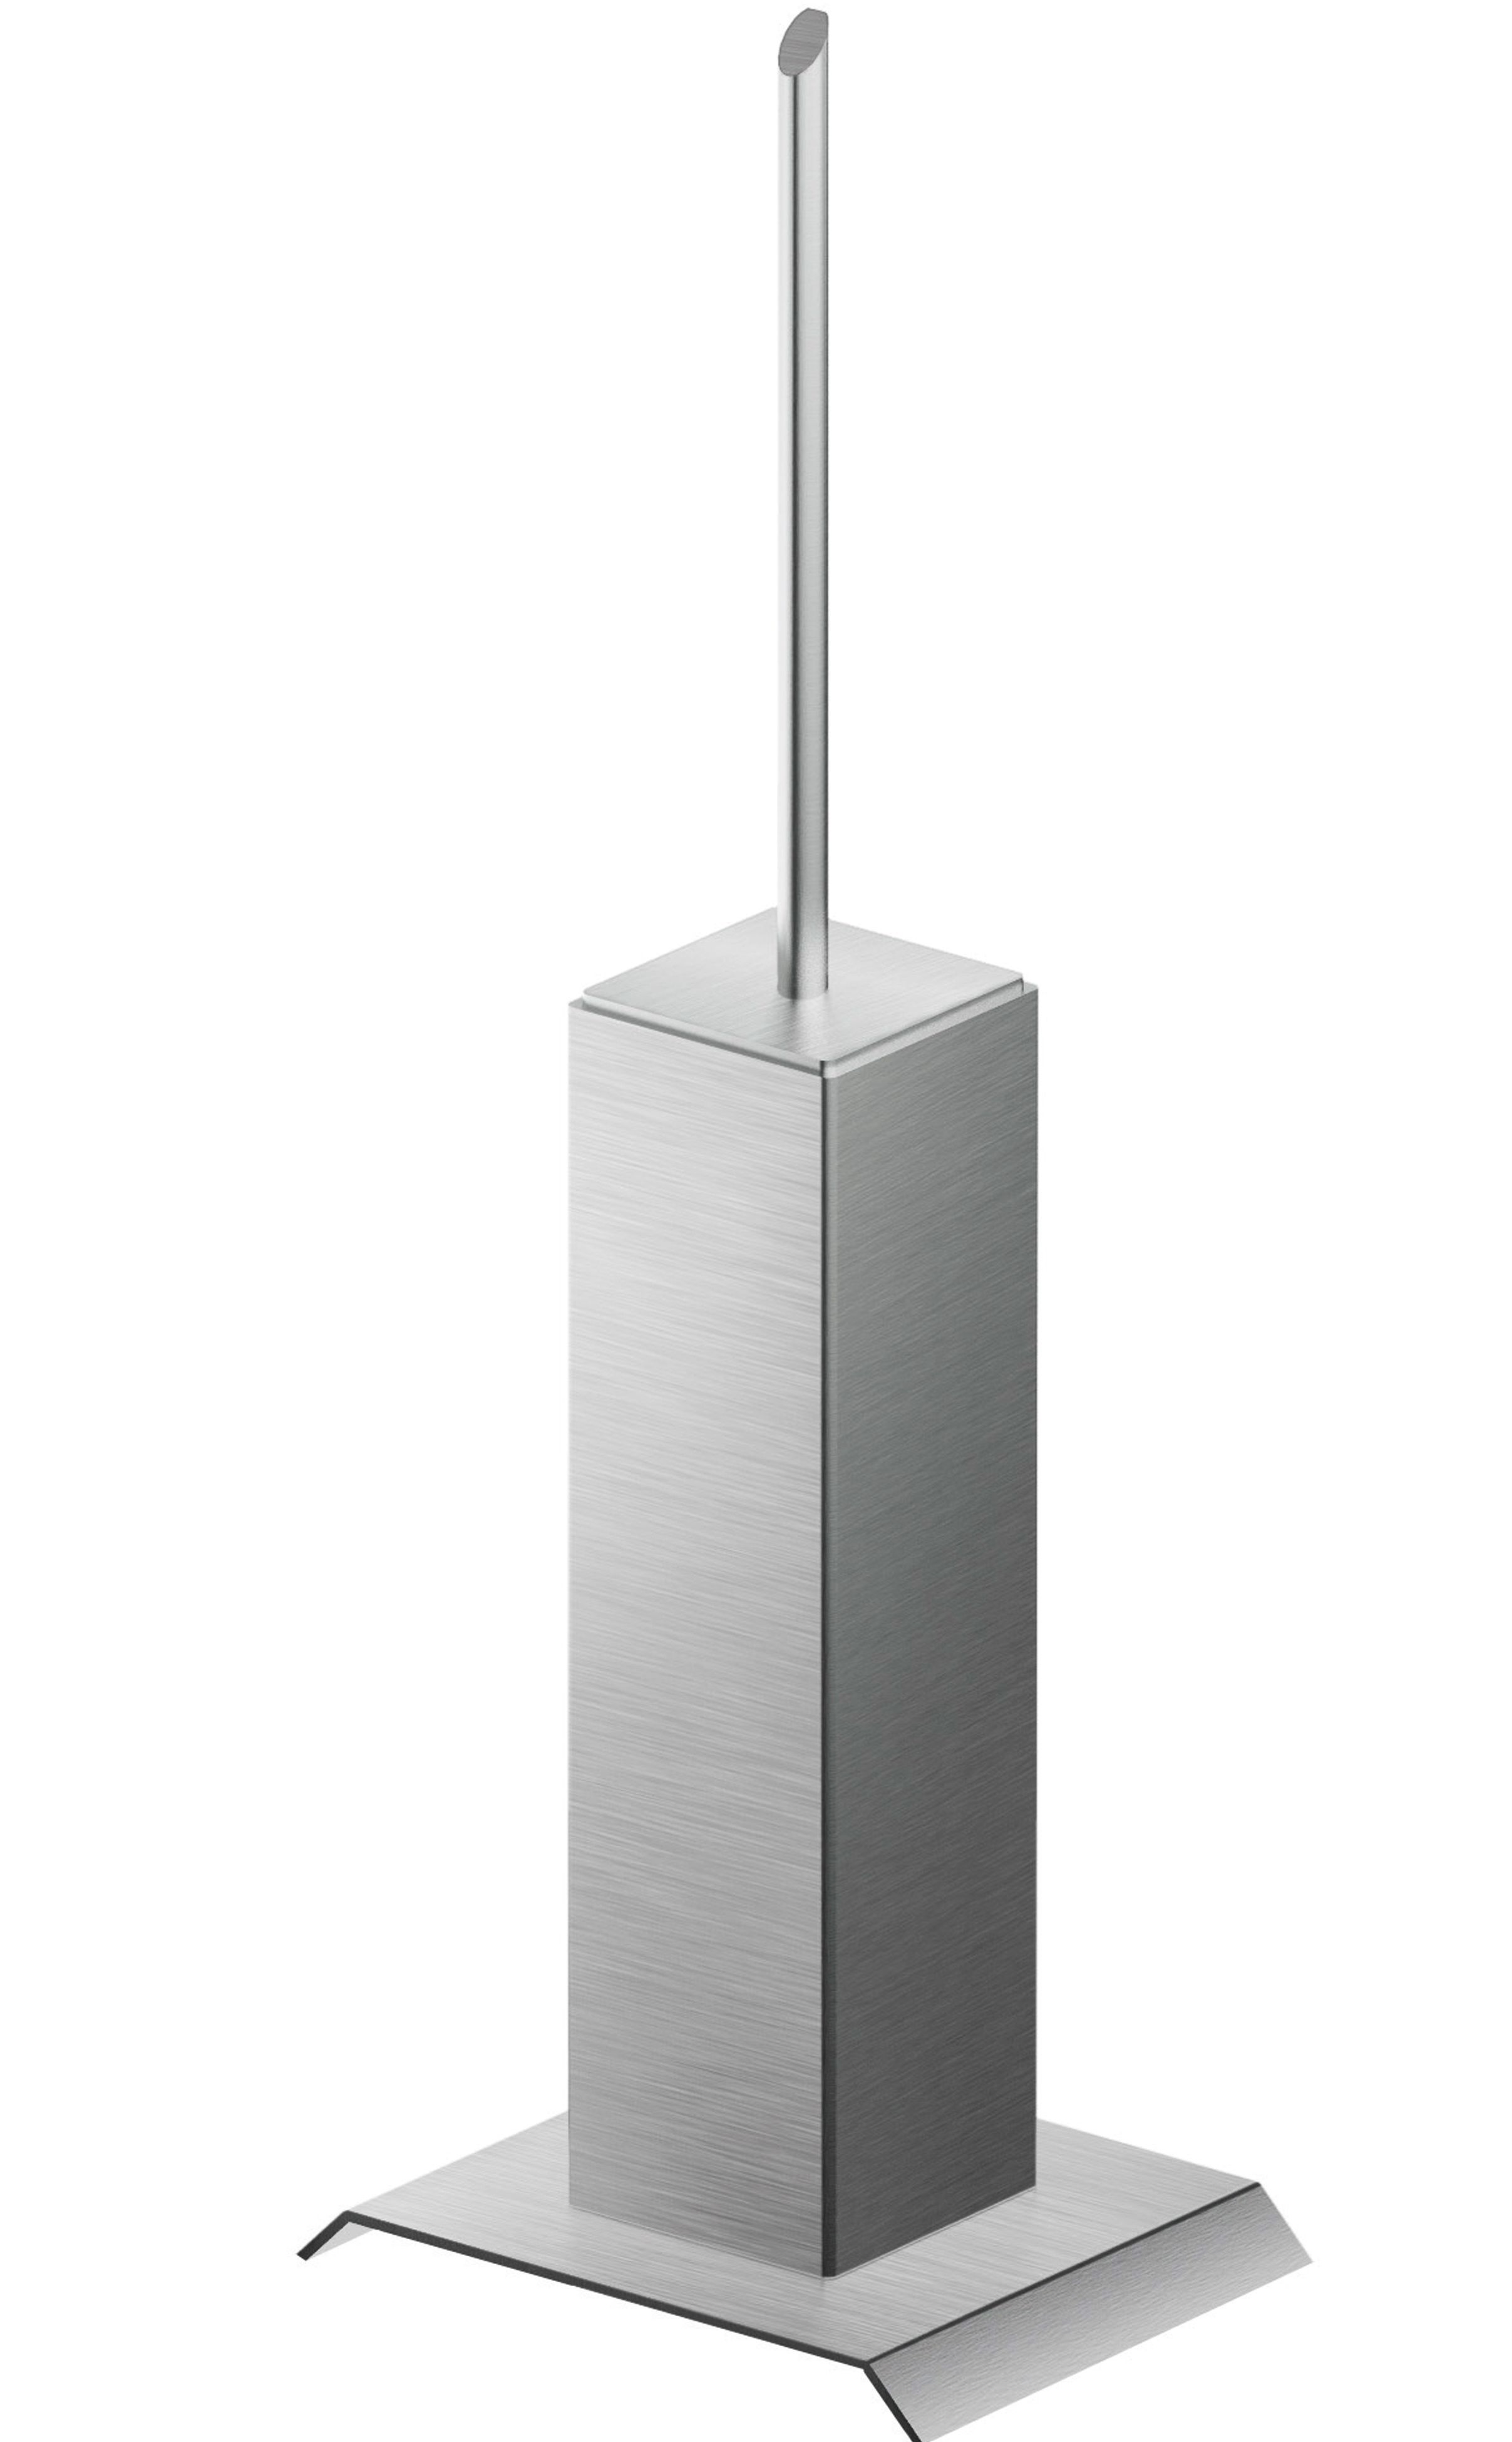 MGS AC913 Toilet Brush Holder - matte stainless